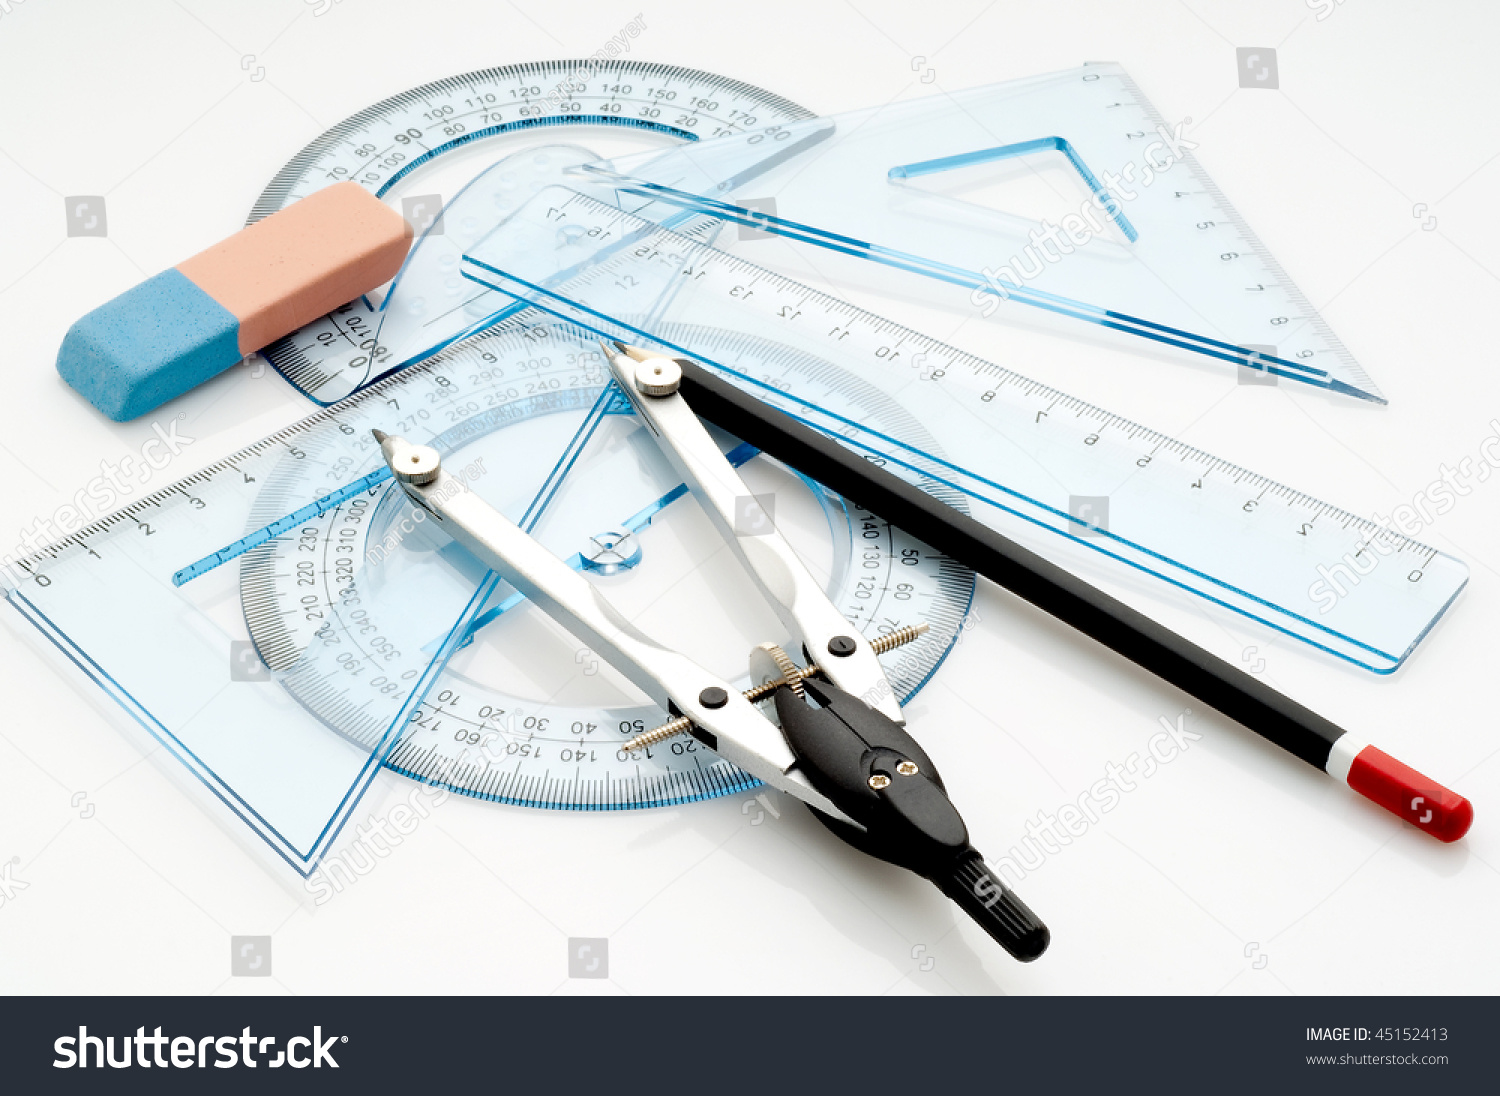 technical drawing instruments stock photo 45152413